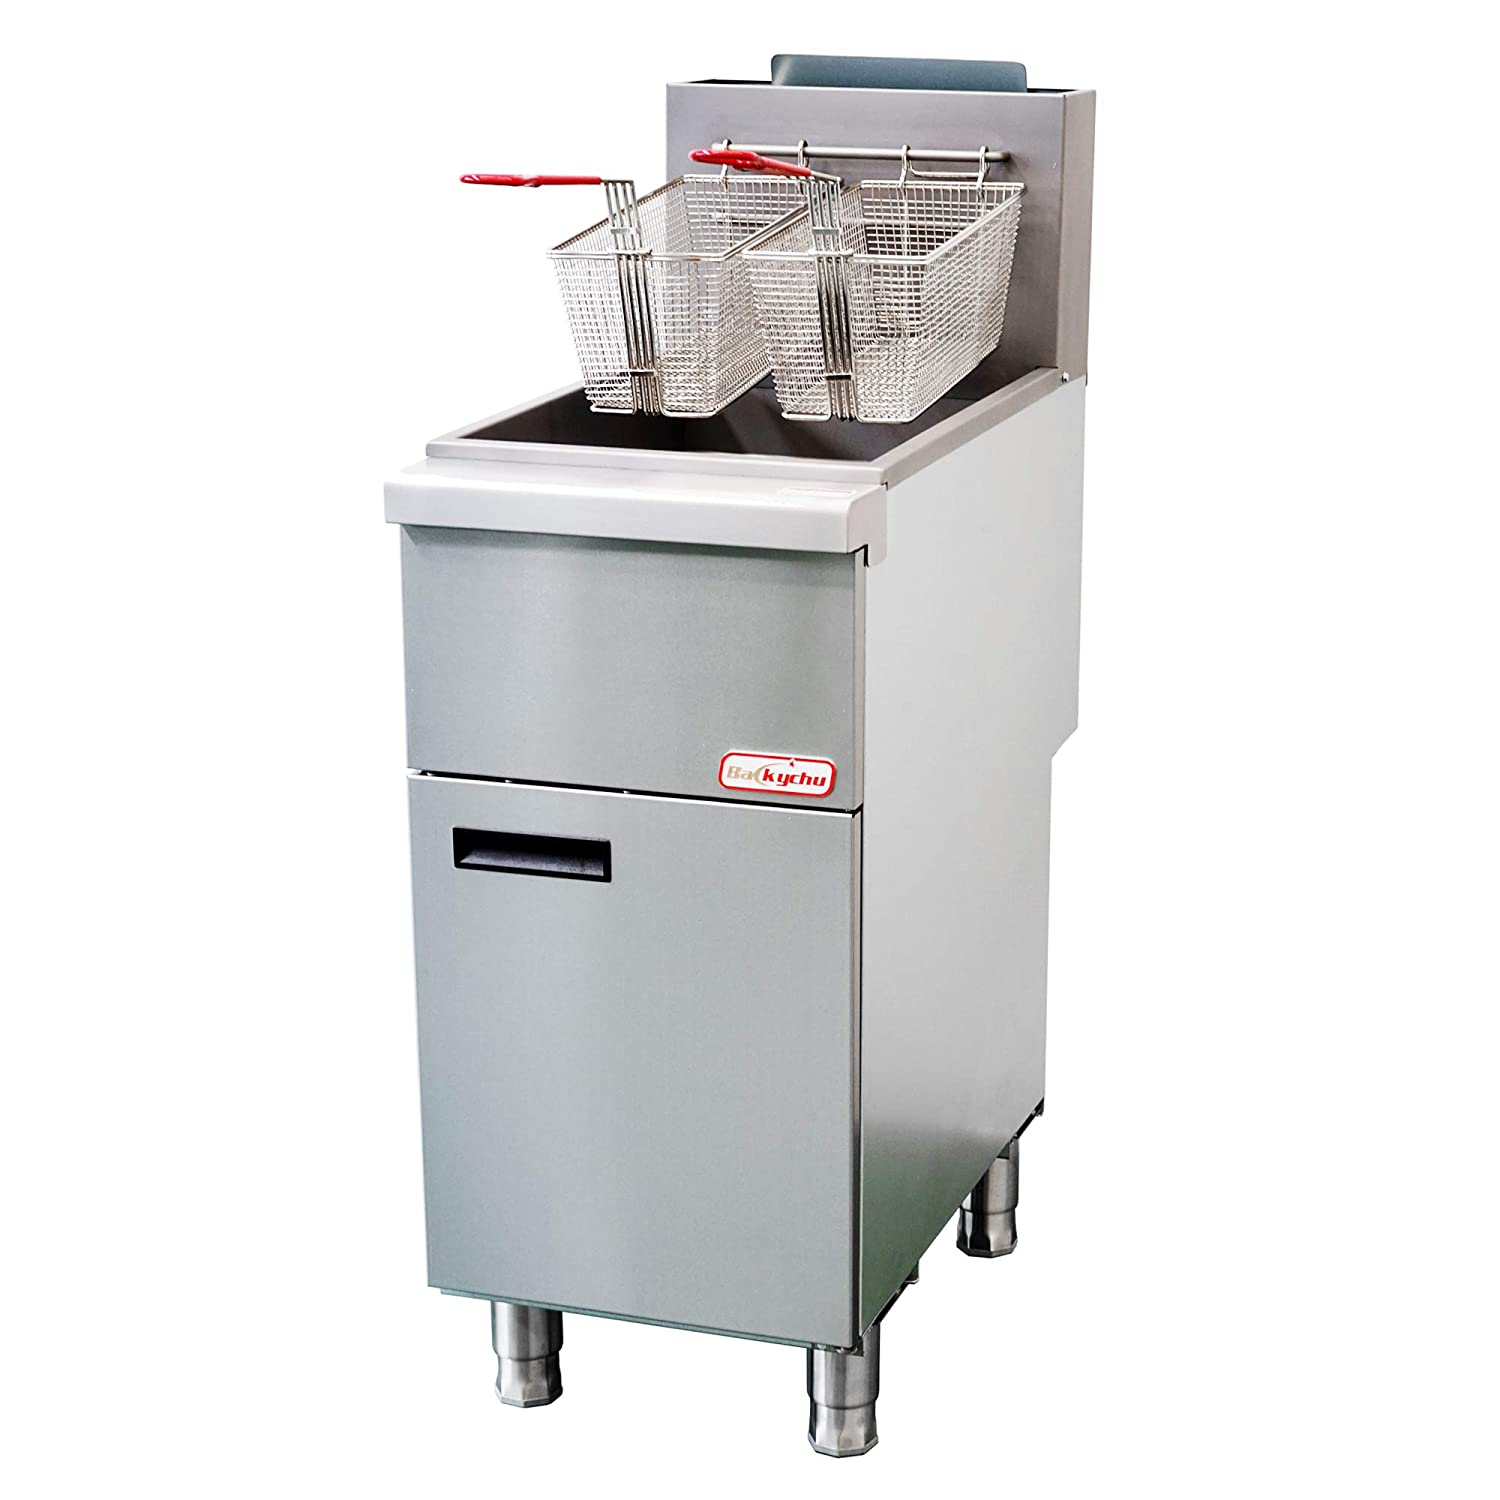 Backychu Commercial Deep Fryer Natural Gas Floor Fryer with Dual Nickel-plated Fryer Baskets for Restaurant, Kitchen, Cooking, Frying, Fish, French Fries, 3 Tube, 90,000 BTU/h, 35-40 lbs